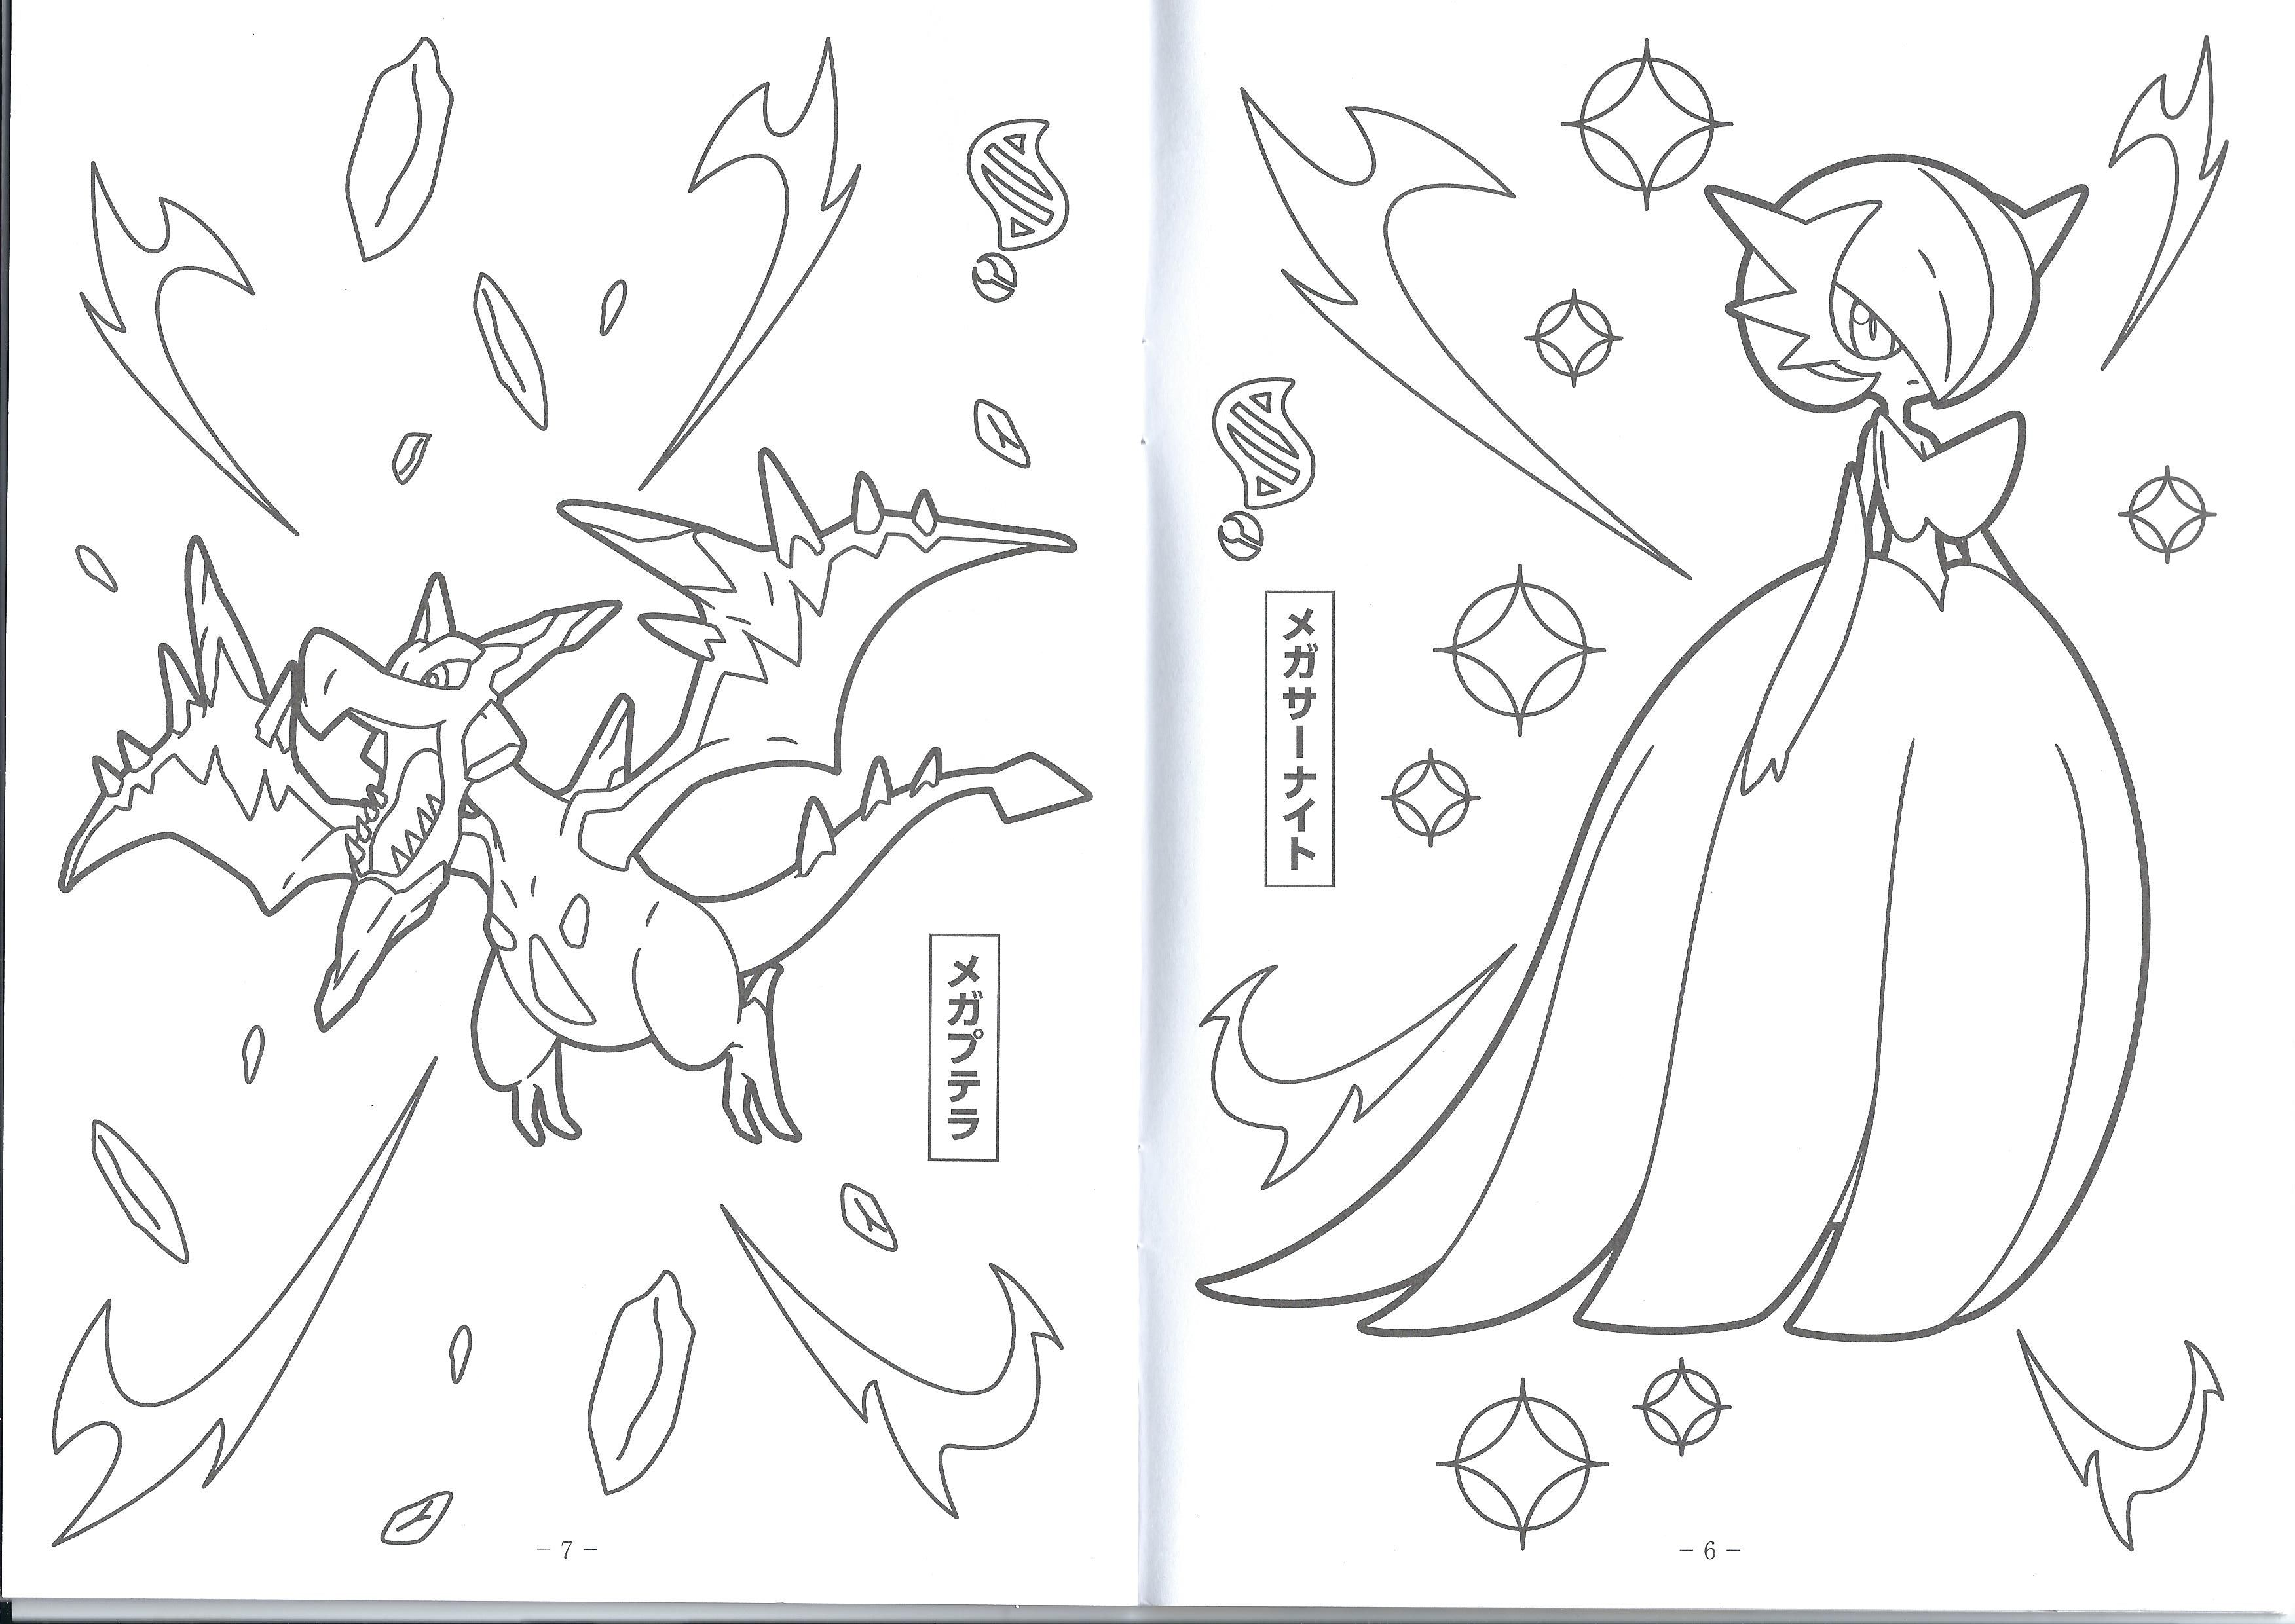 Pin by Austina Nee on New Pokemon XY coloring pages | Pinterest ...